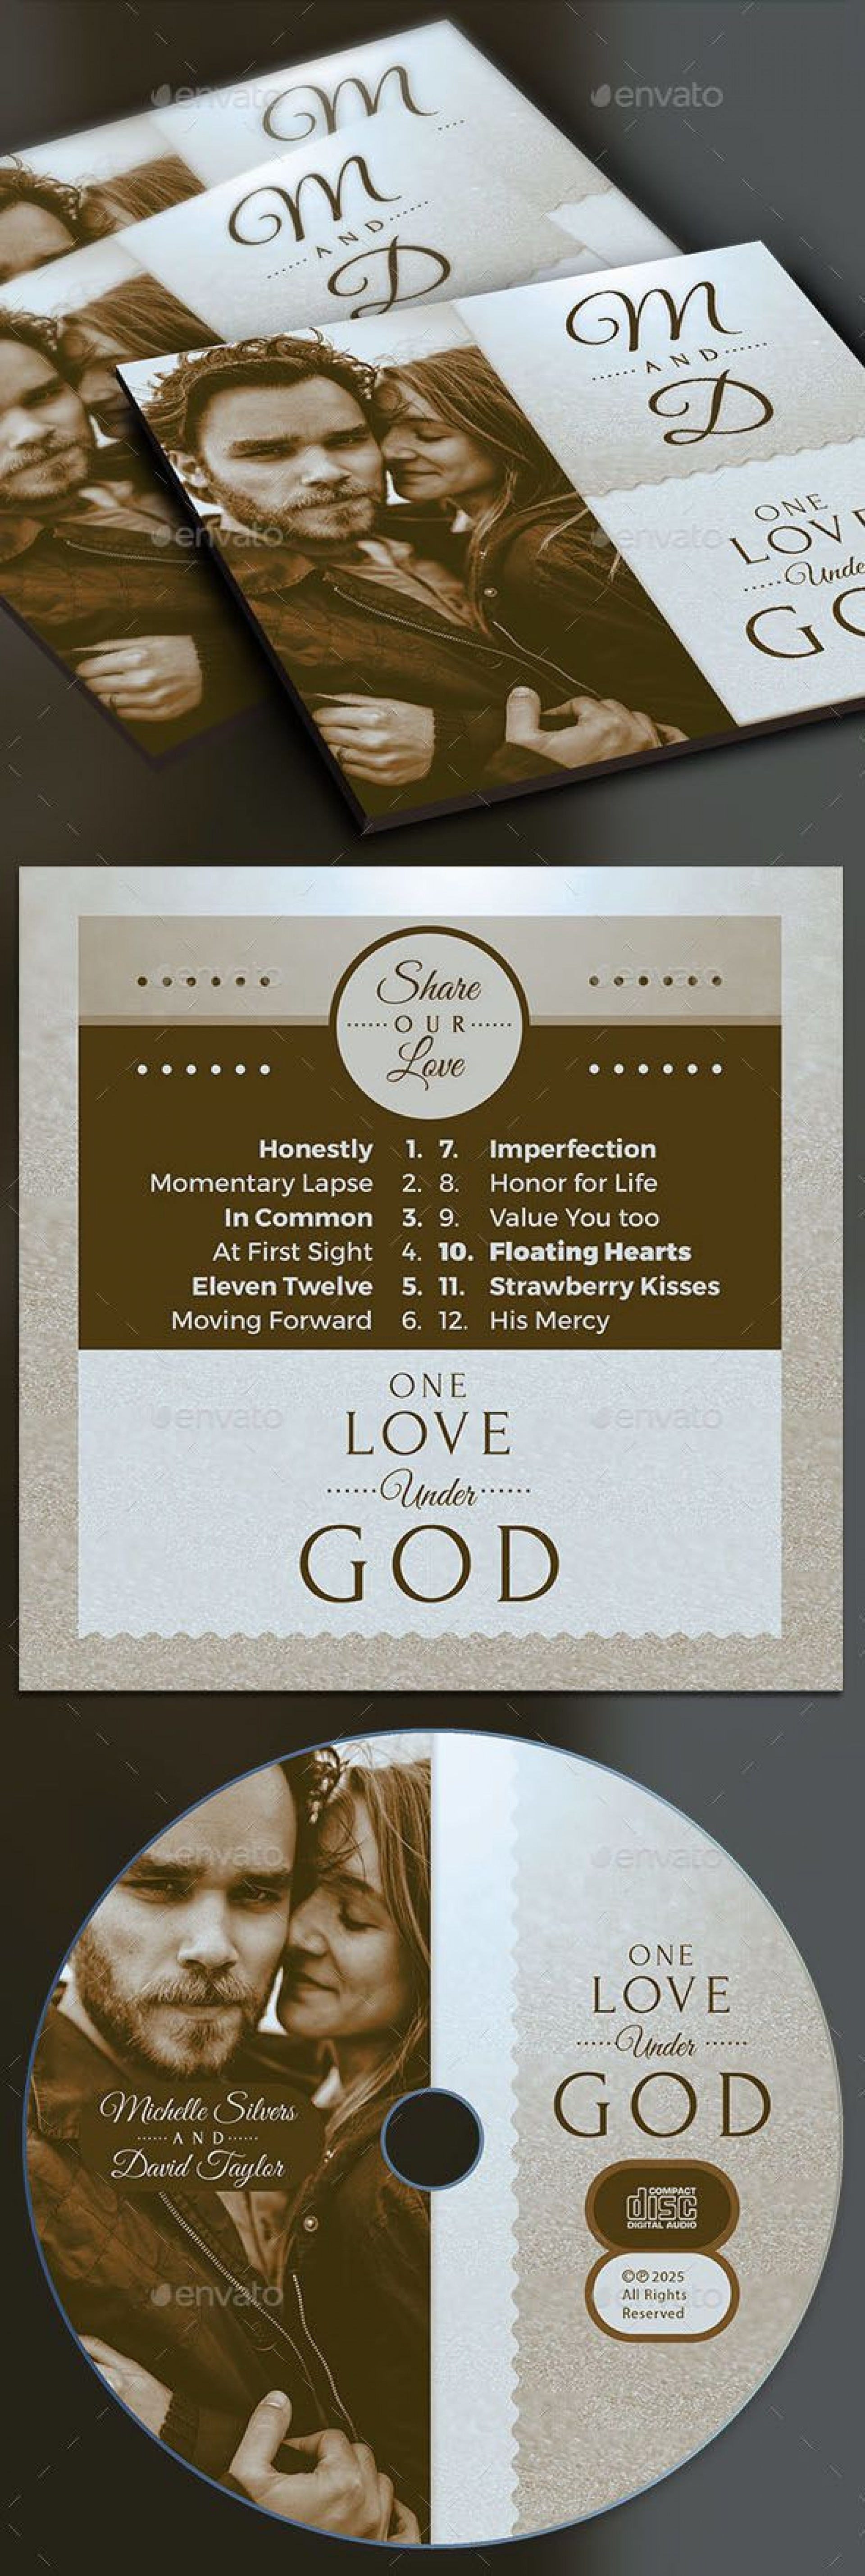 004 Beautiful Wedding Cd Cover Design Template Free Download Example 1920